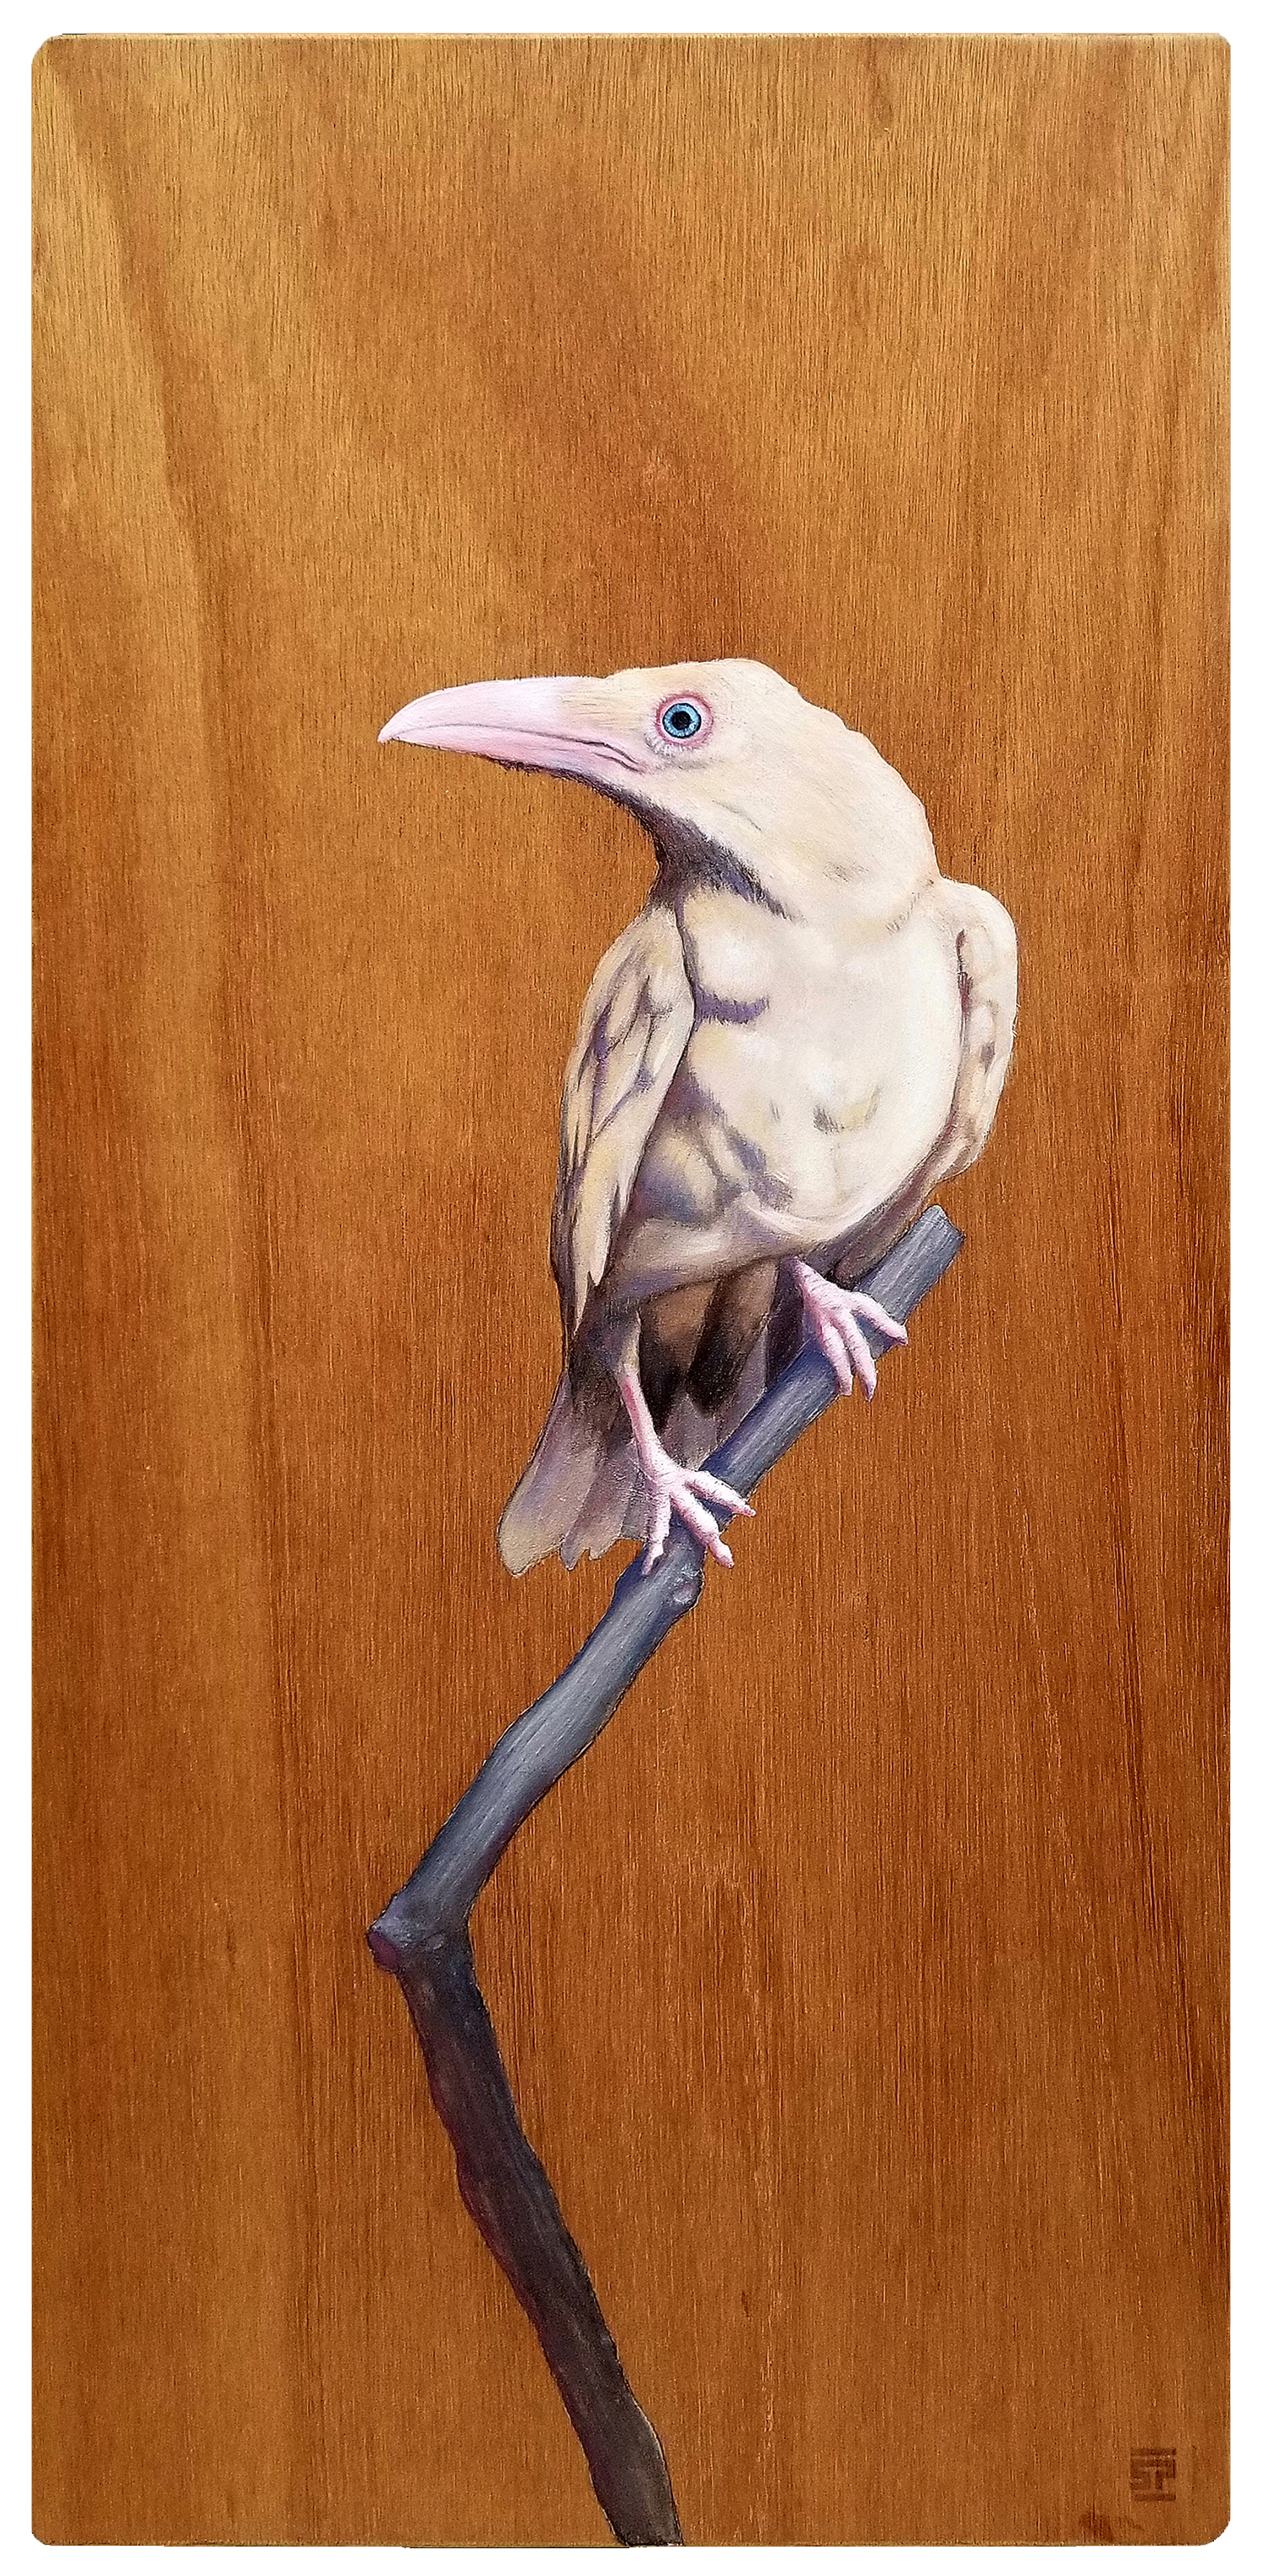 The White Raven - SOLD